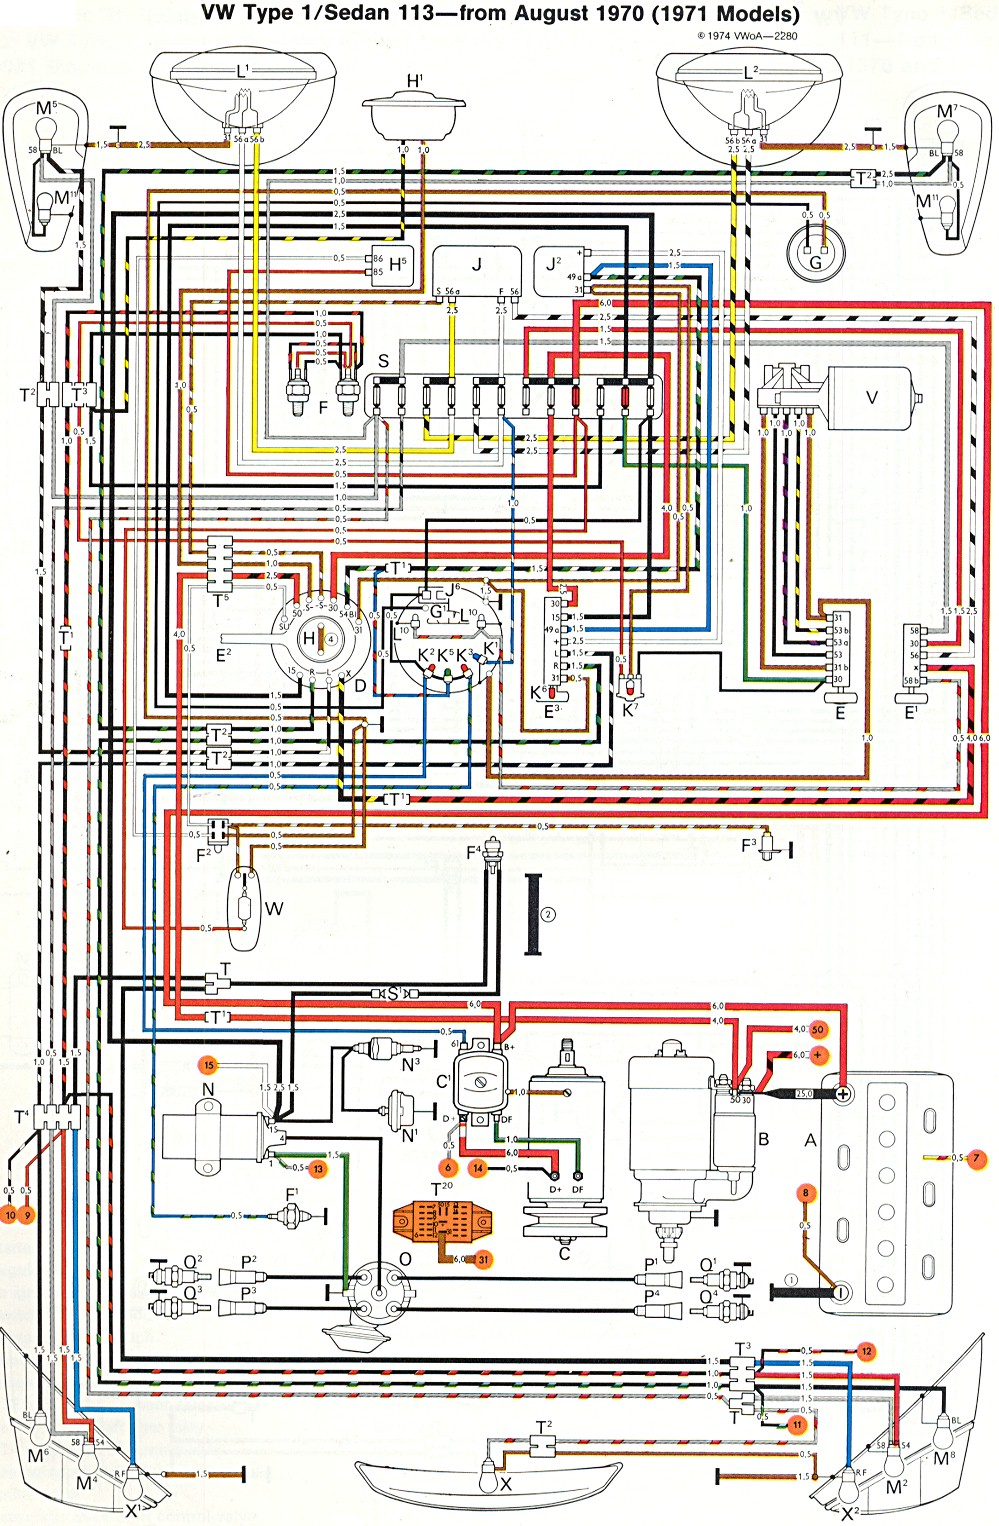 2000 volkswagen beetle engine diagram 1971 super beetle wiring diagram | thegoldenbug.com